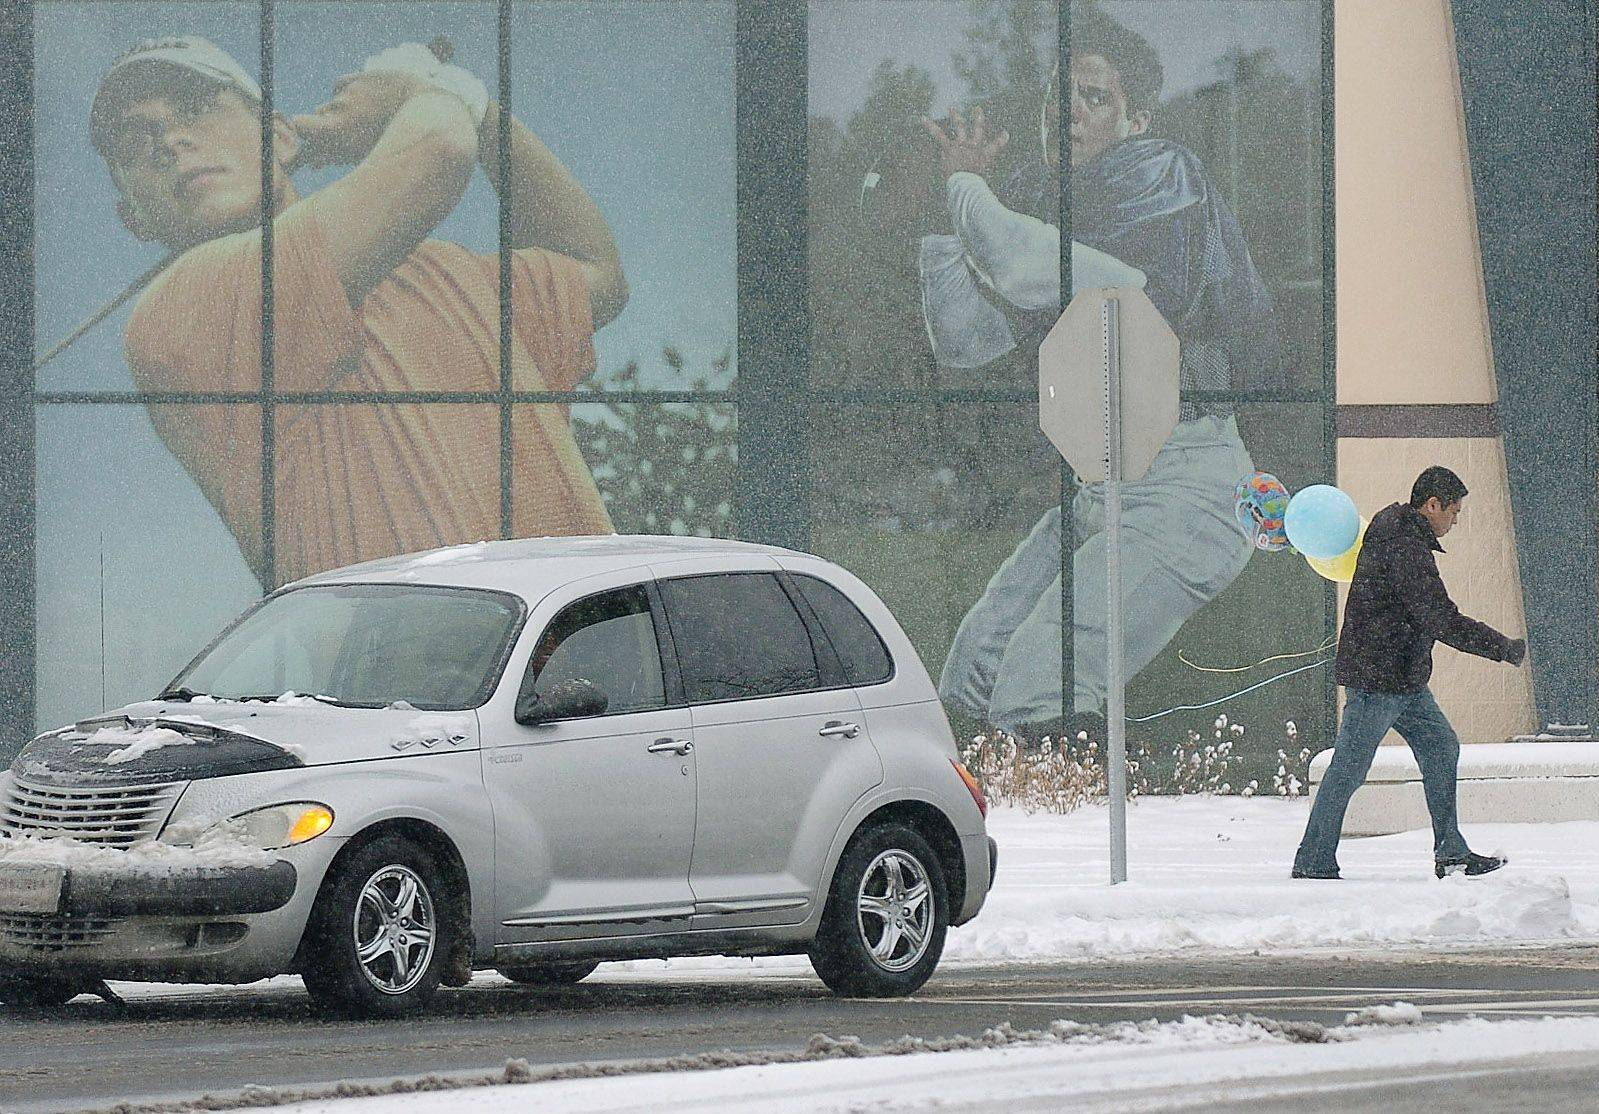 A man makes his way through the snow carrying balloons from Party City in front of Dick's Sporting Goods in Hawthorn Hills Square in Vernon Hills.